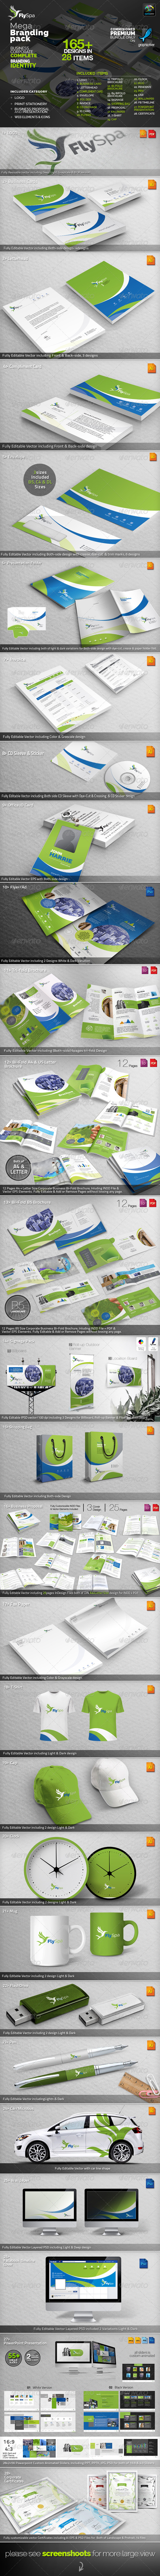 GraphicRiver FlySpa Corporate Identity Mega Branding Pack 5298566